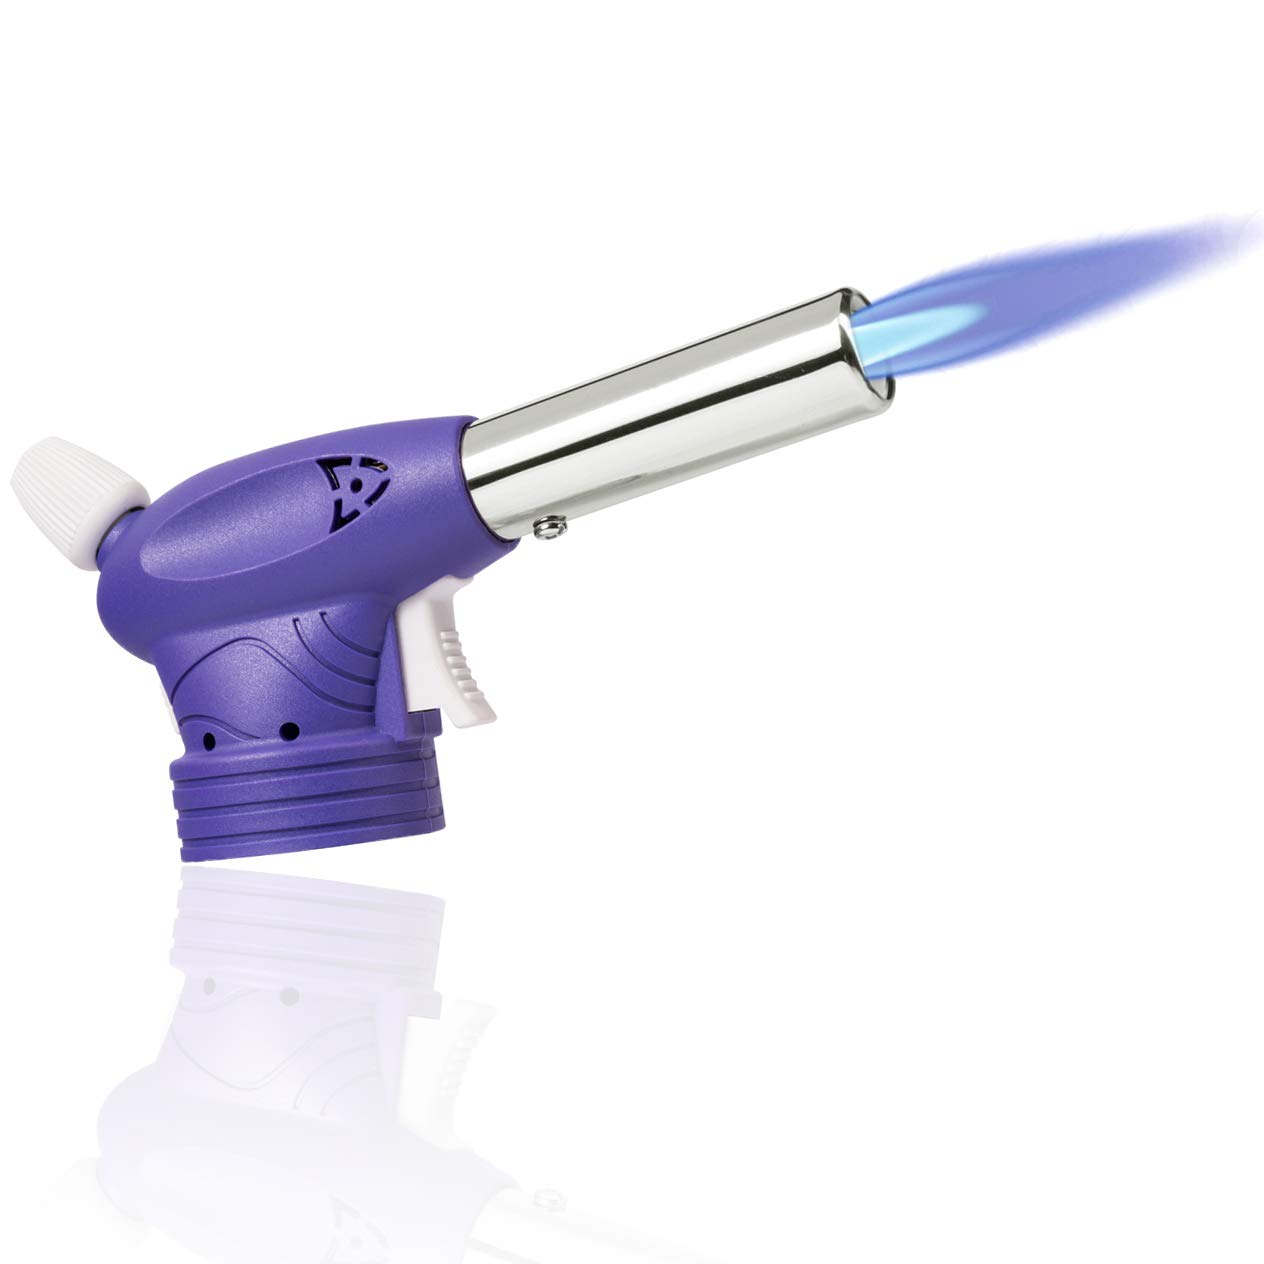 Creme Brulee Butane Torch - MFW Culinary Cooking Blazer Torch - Kitchen Food Scorch Torch with Safety Lock & Adjustable Flame for Cooking, Baking, BBQ (purple)